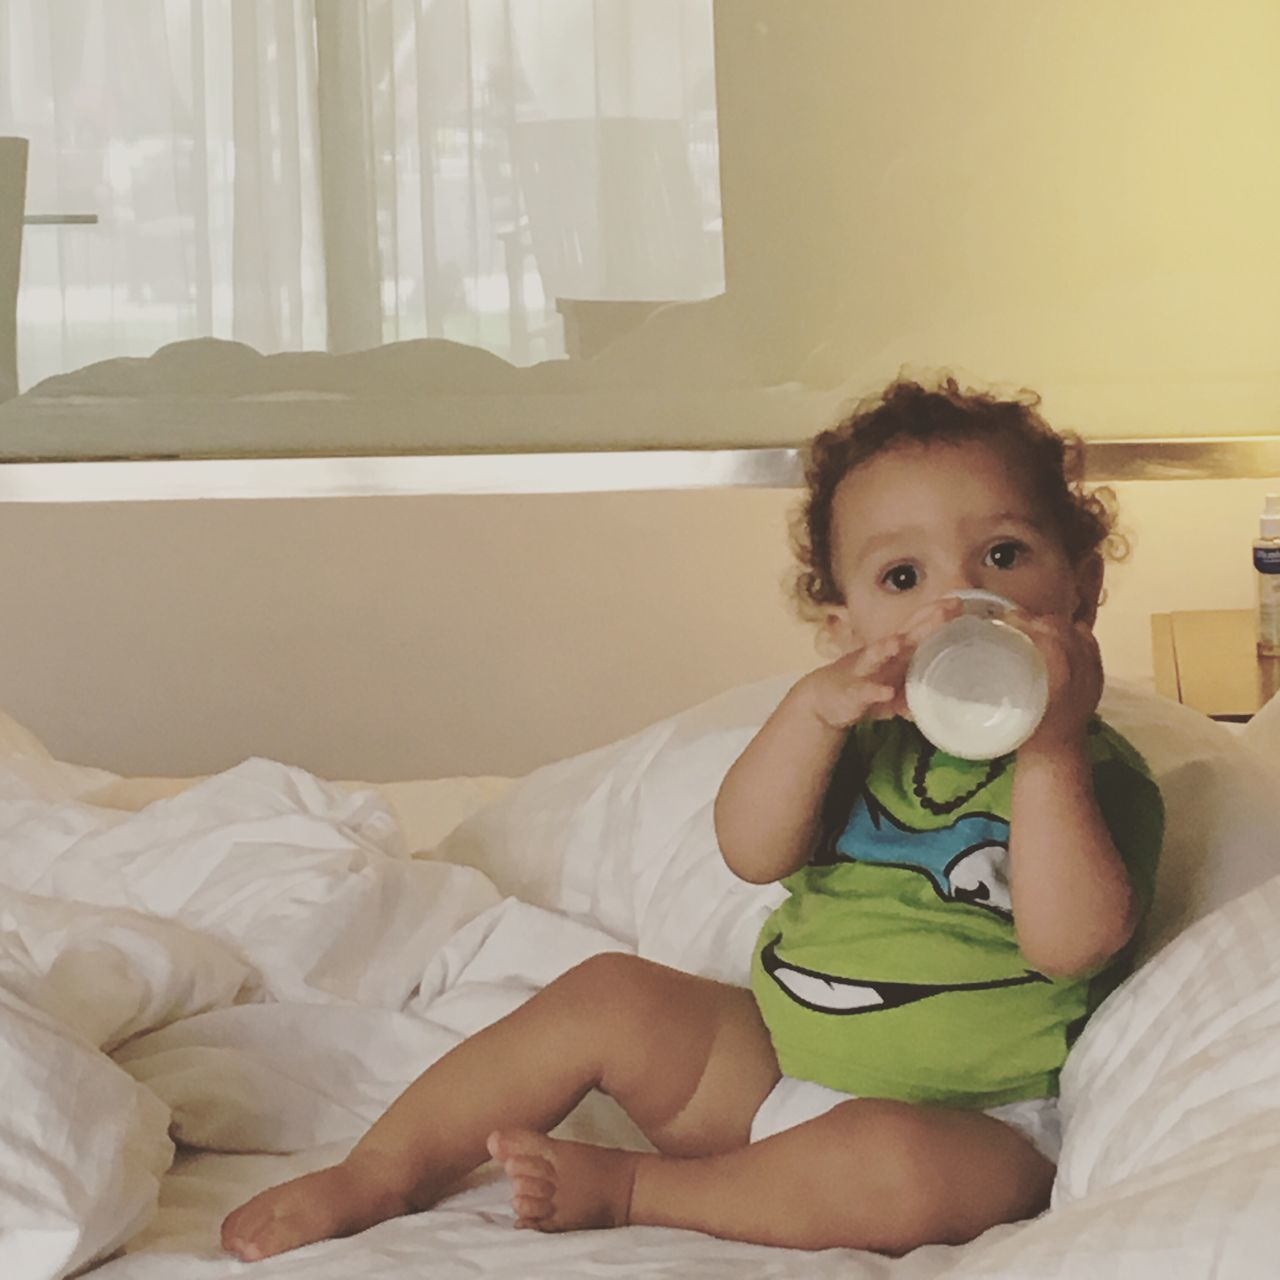 Bed Milk Baby Child Control Ninja Turtles Green White Blonde Son Childhood Drinking Bed Indoors  Innocence Bedroom Looking At Camera Home Interior Real People Cute Portrait One Person Sitting Drink Pacifier Day People First Eyeem Photo